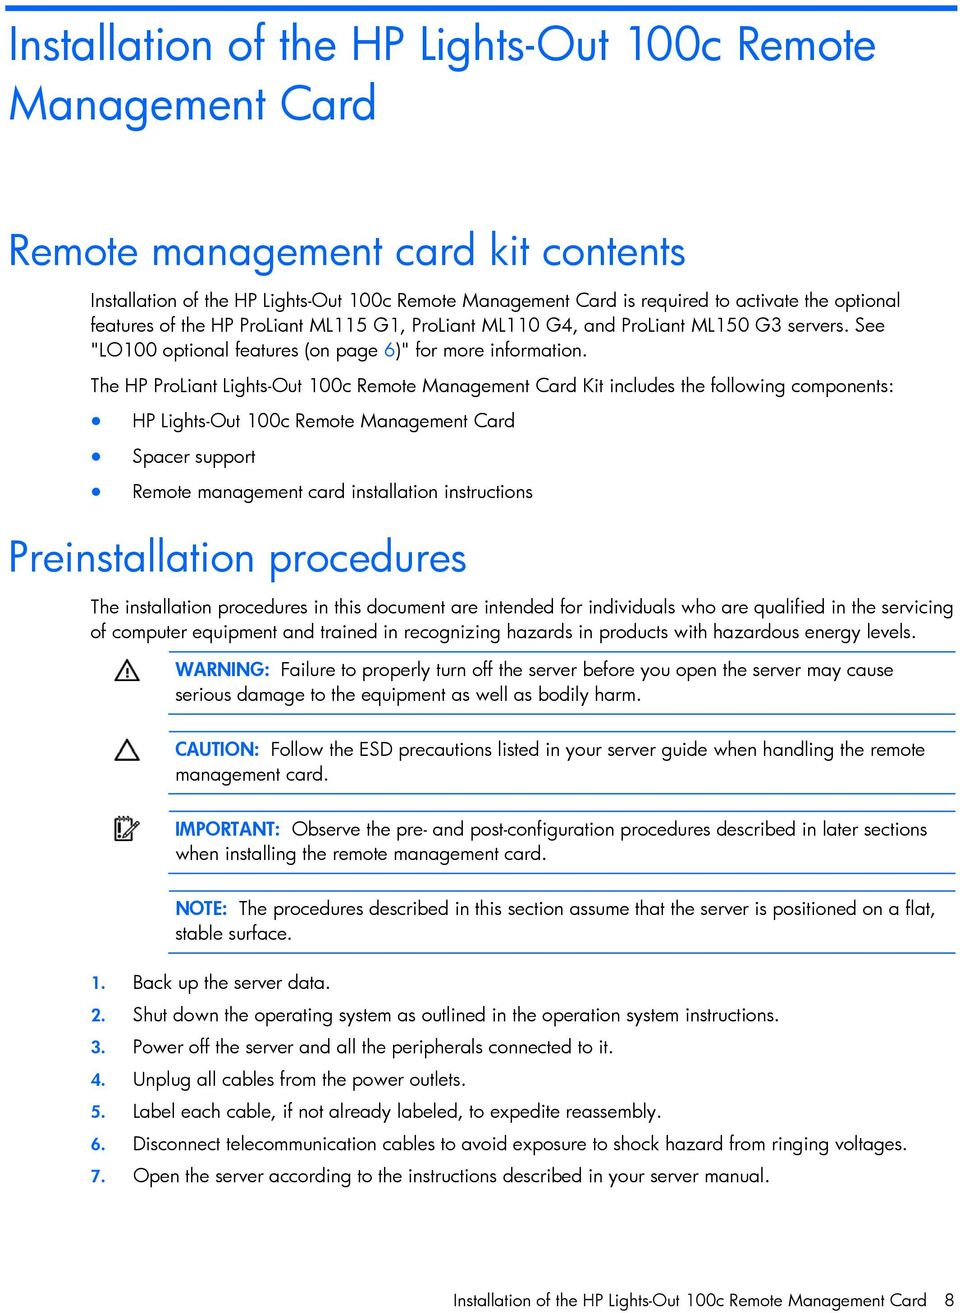 The HP PrLiant Lights-Out 100c Remte Management Card Kit includes the fllwing cmpnents: HP Lights-Out 100c Remte Management Card Spacer supprt Remte management card installatin instructins